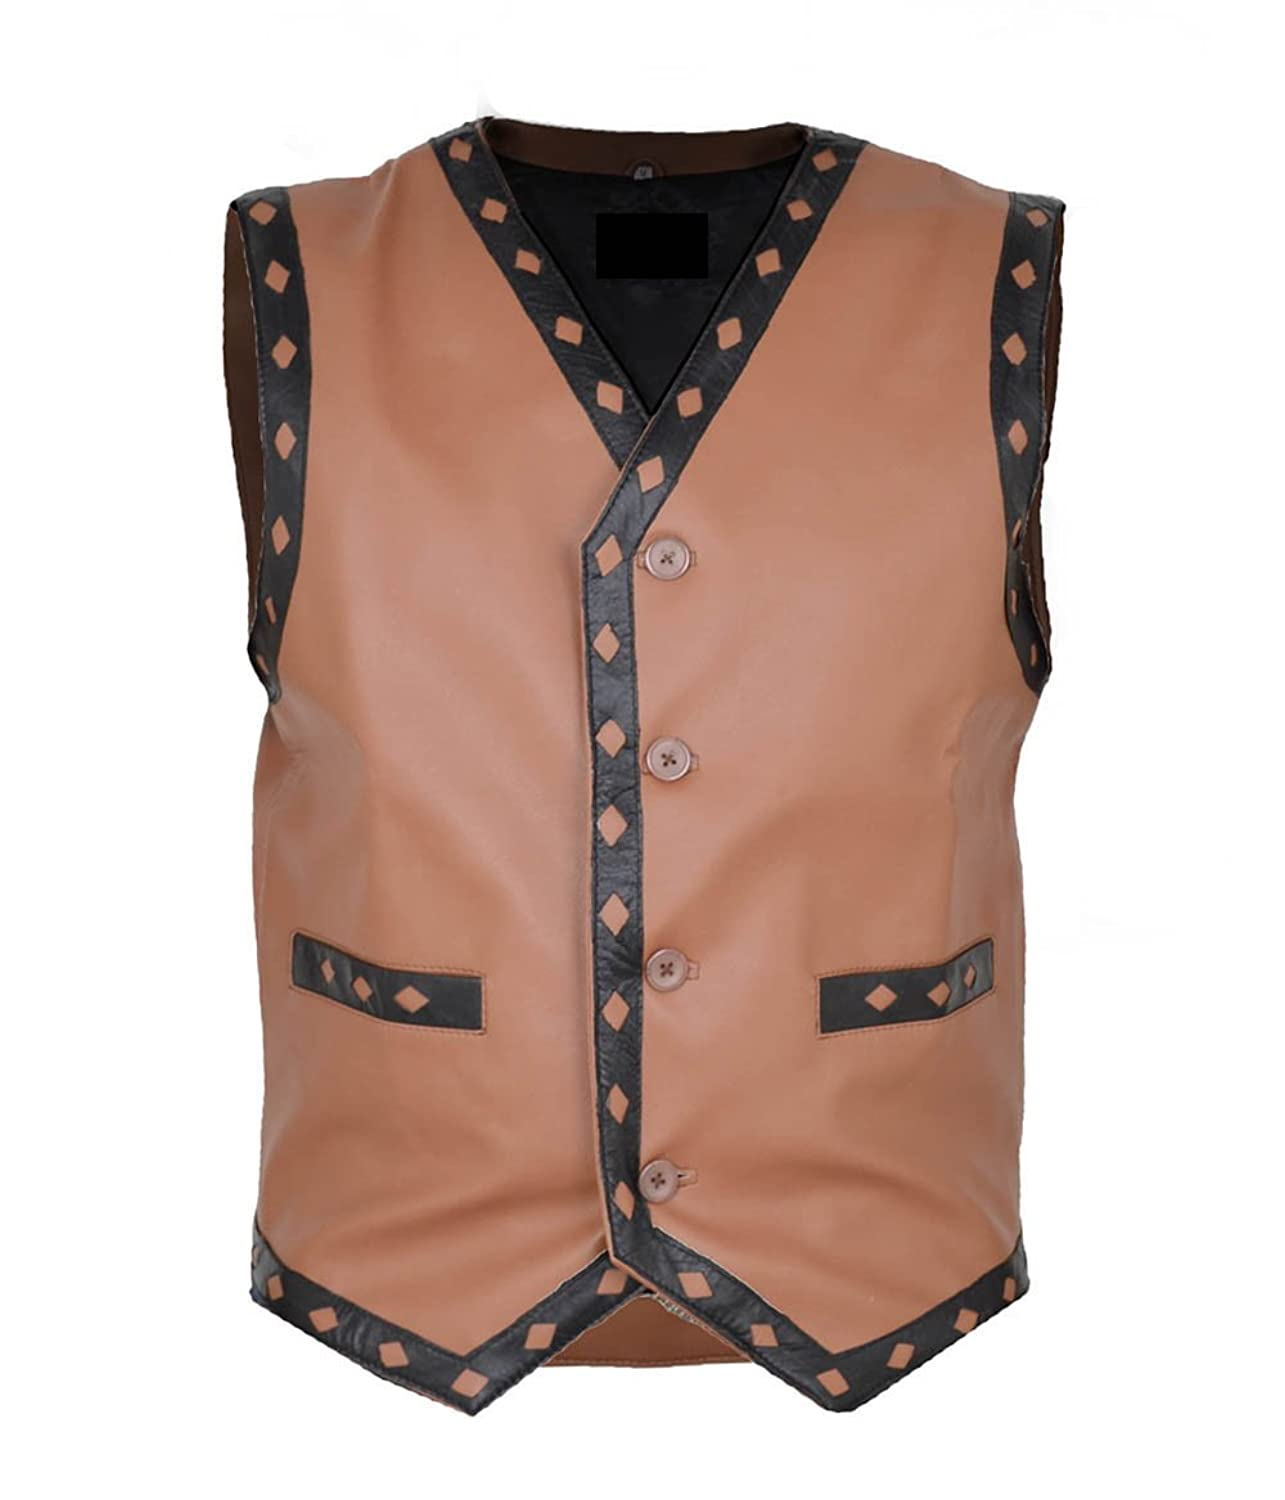 The Warriors Swan Ajax NY gangstar Brown Real Sheep Leather Vest kaufen